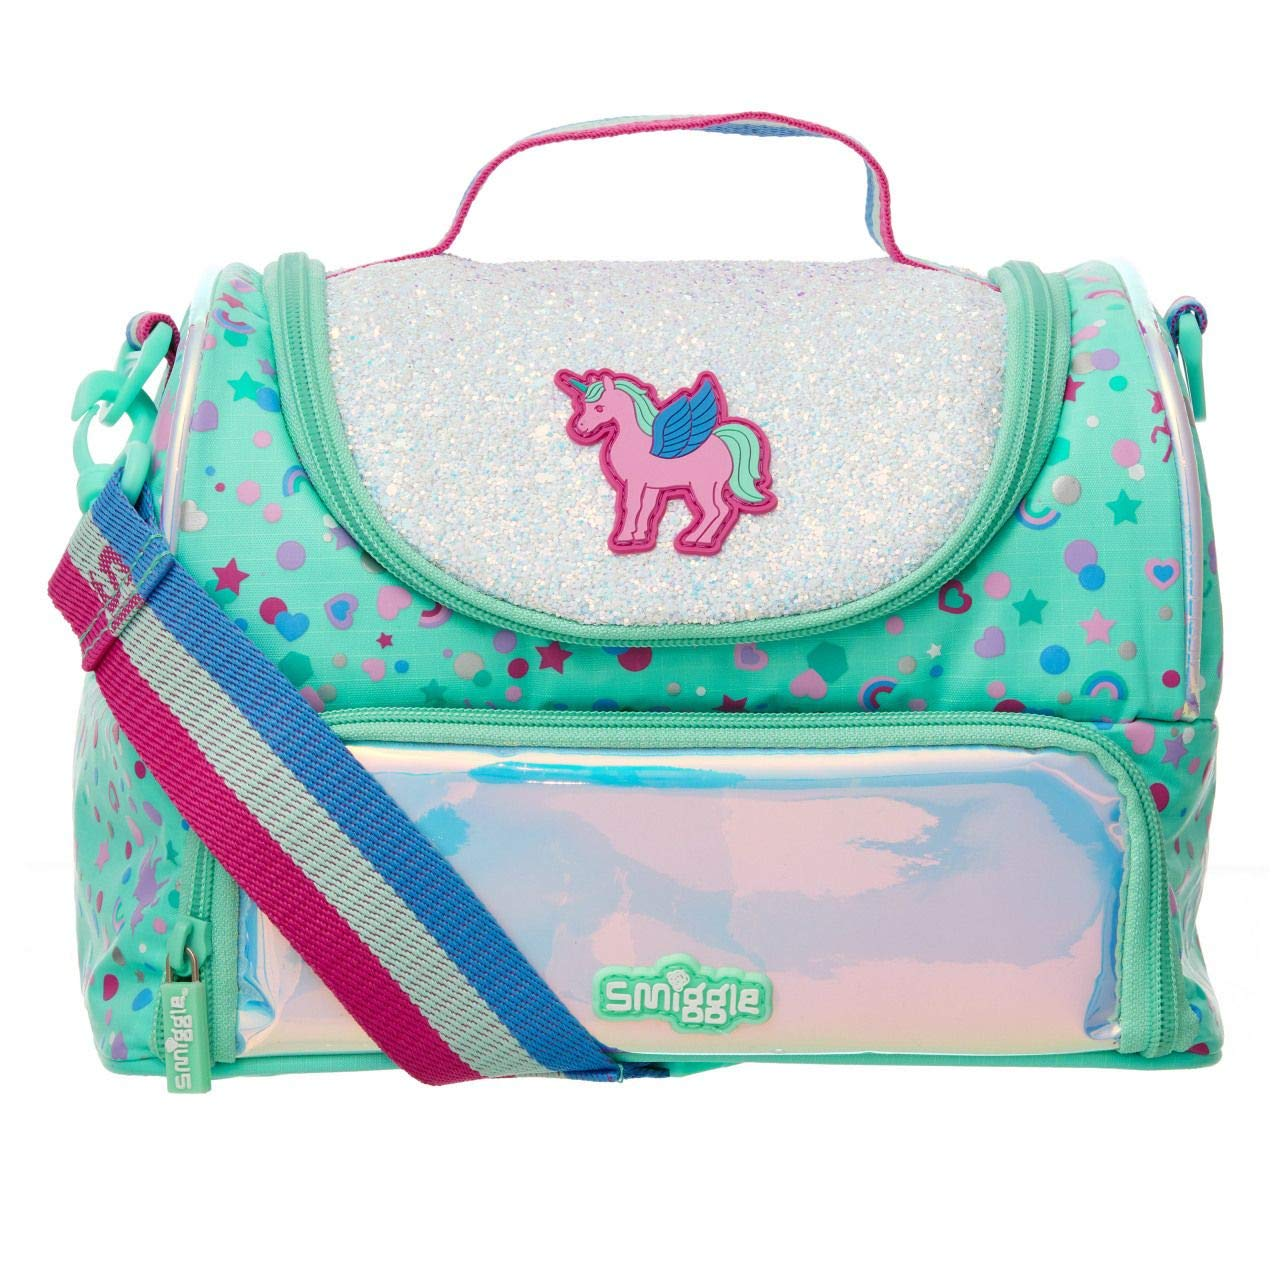 Smiggle Believe School Double Decker Lunchbox for Girls & Boys with Carry Handle & Dual Compartments | Unicorn Print